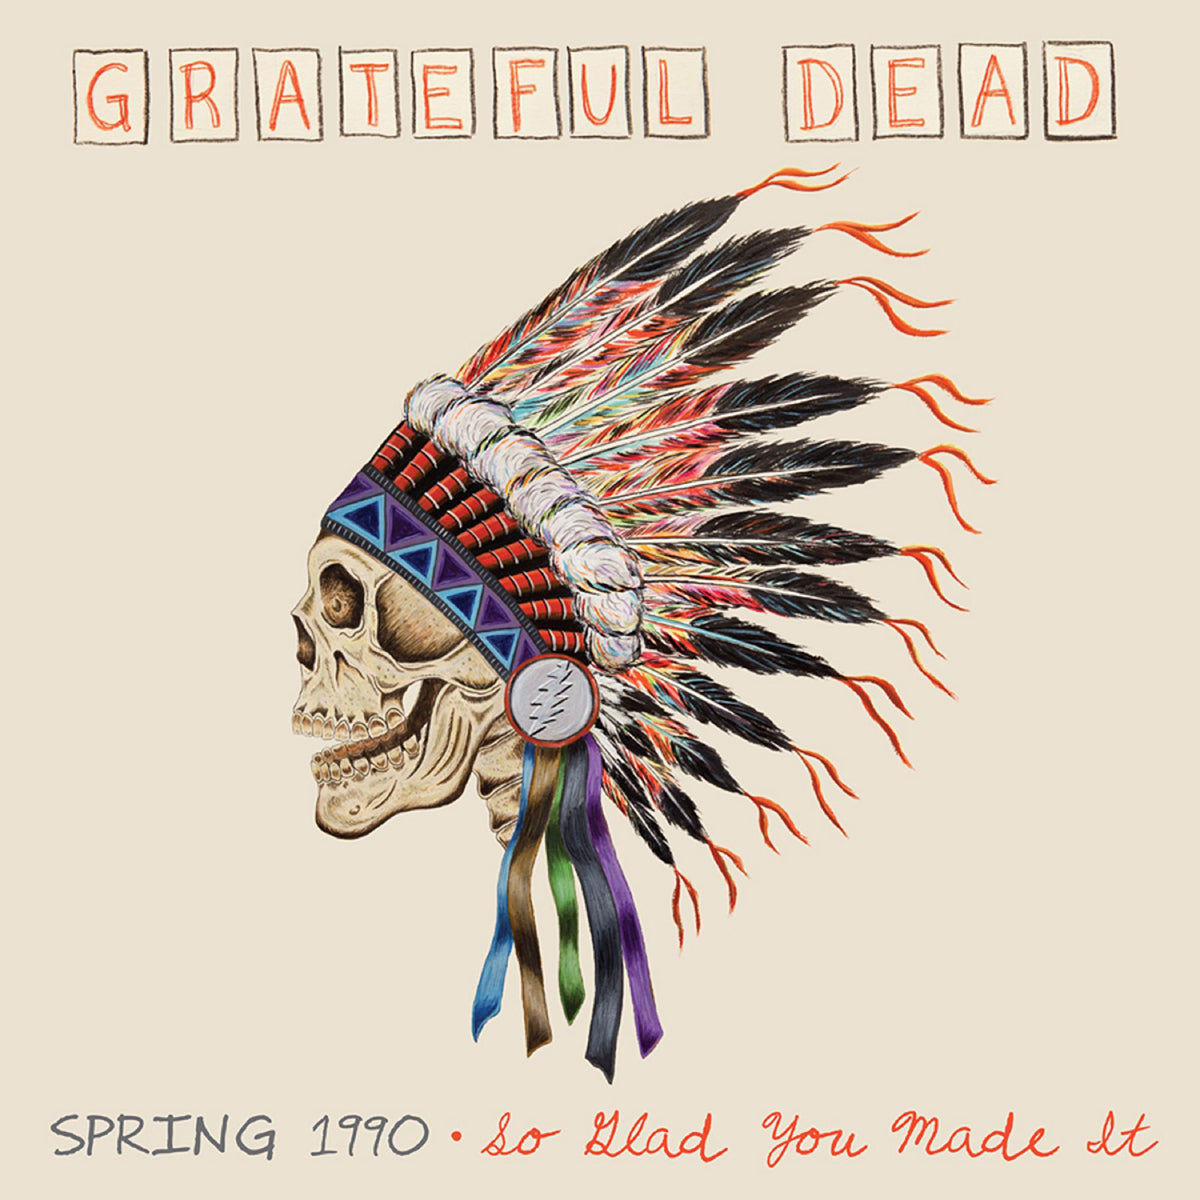 Grateful Dead: Spring 1990 - So Glad You Made It (180g) Vinyl 4LP Boxset